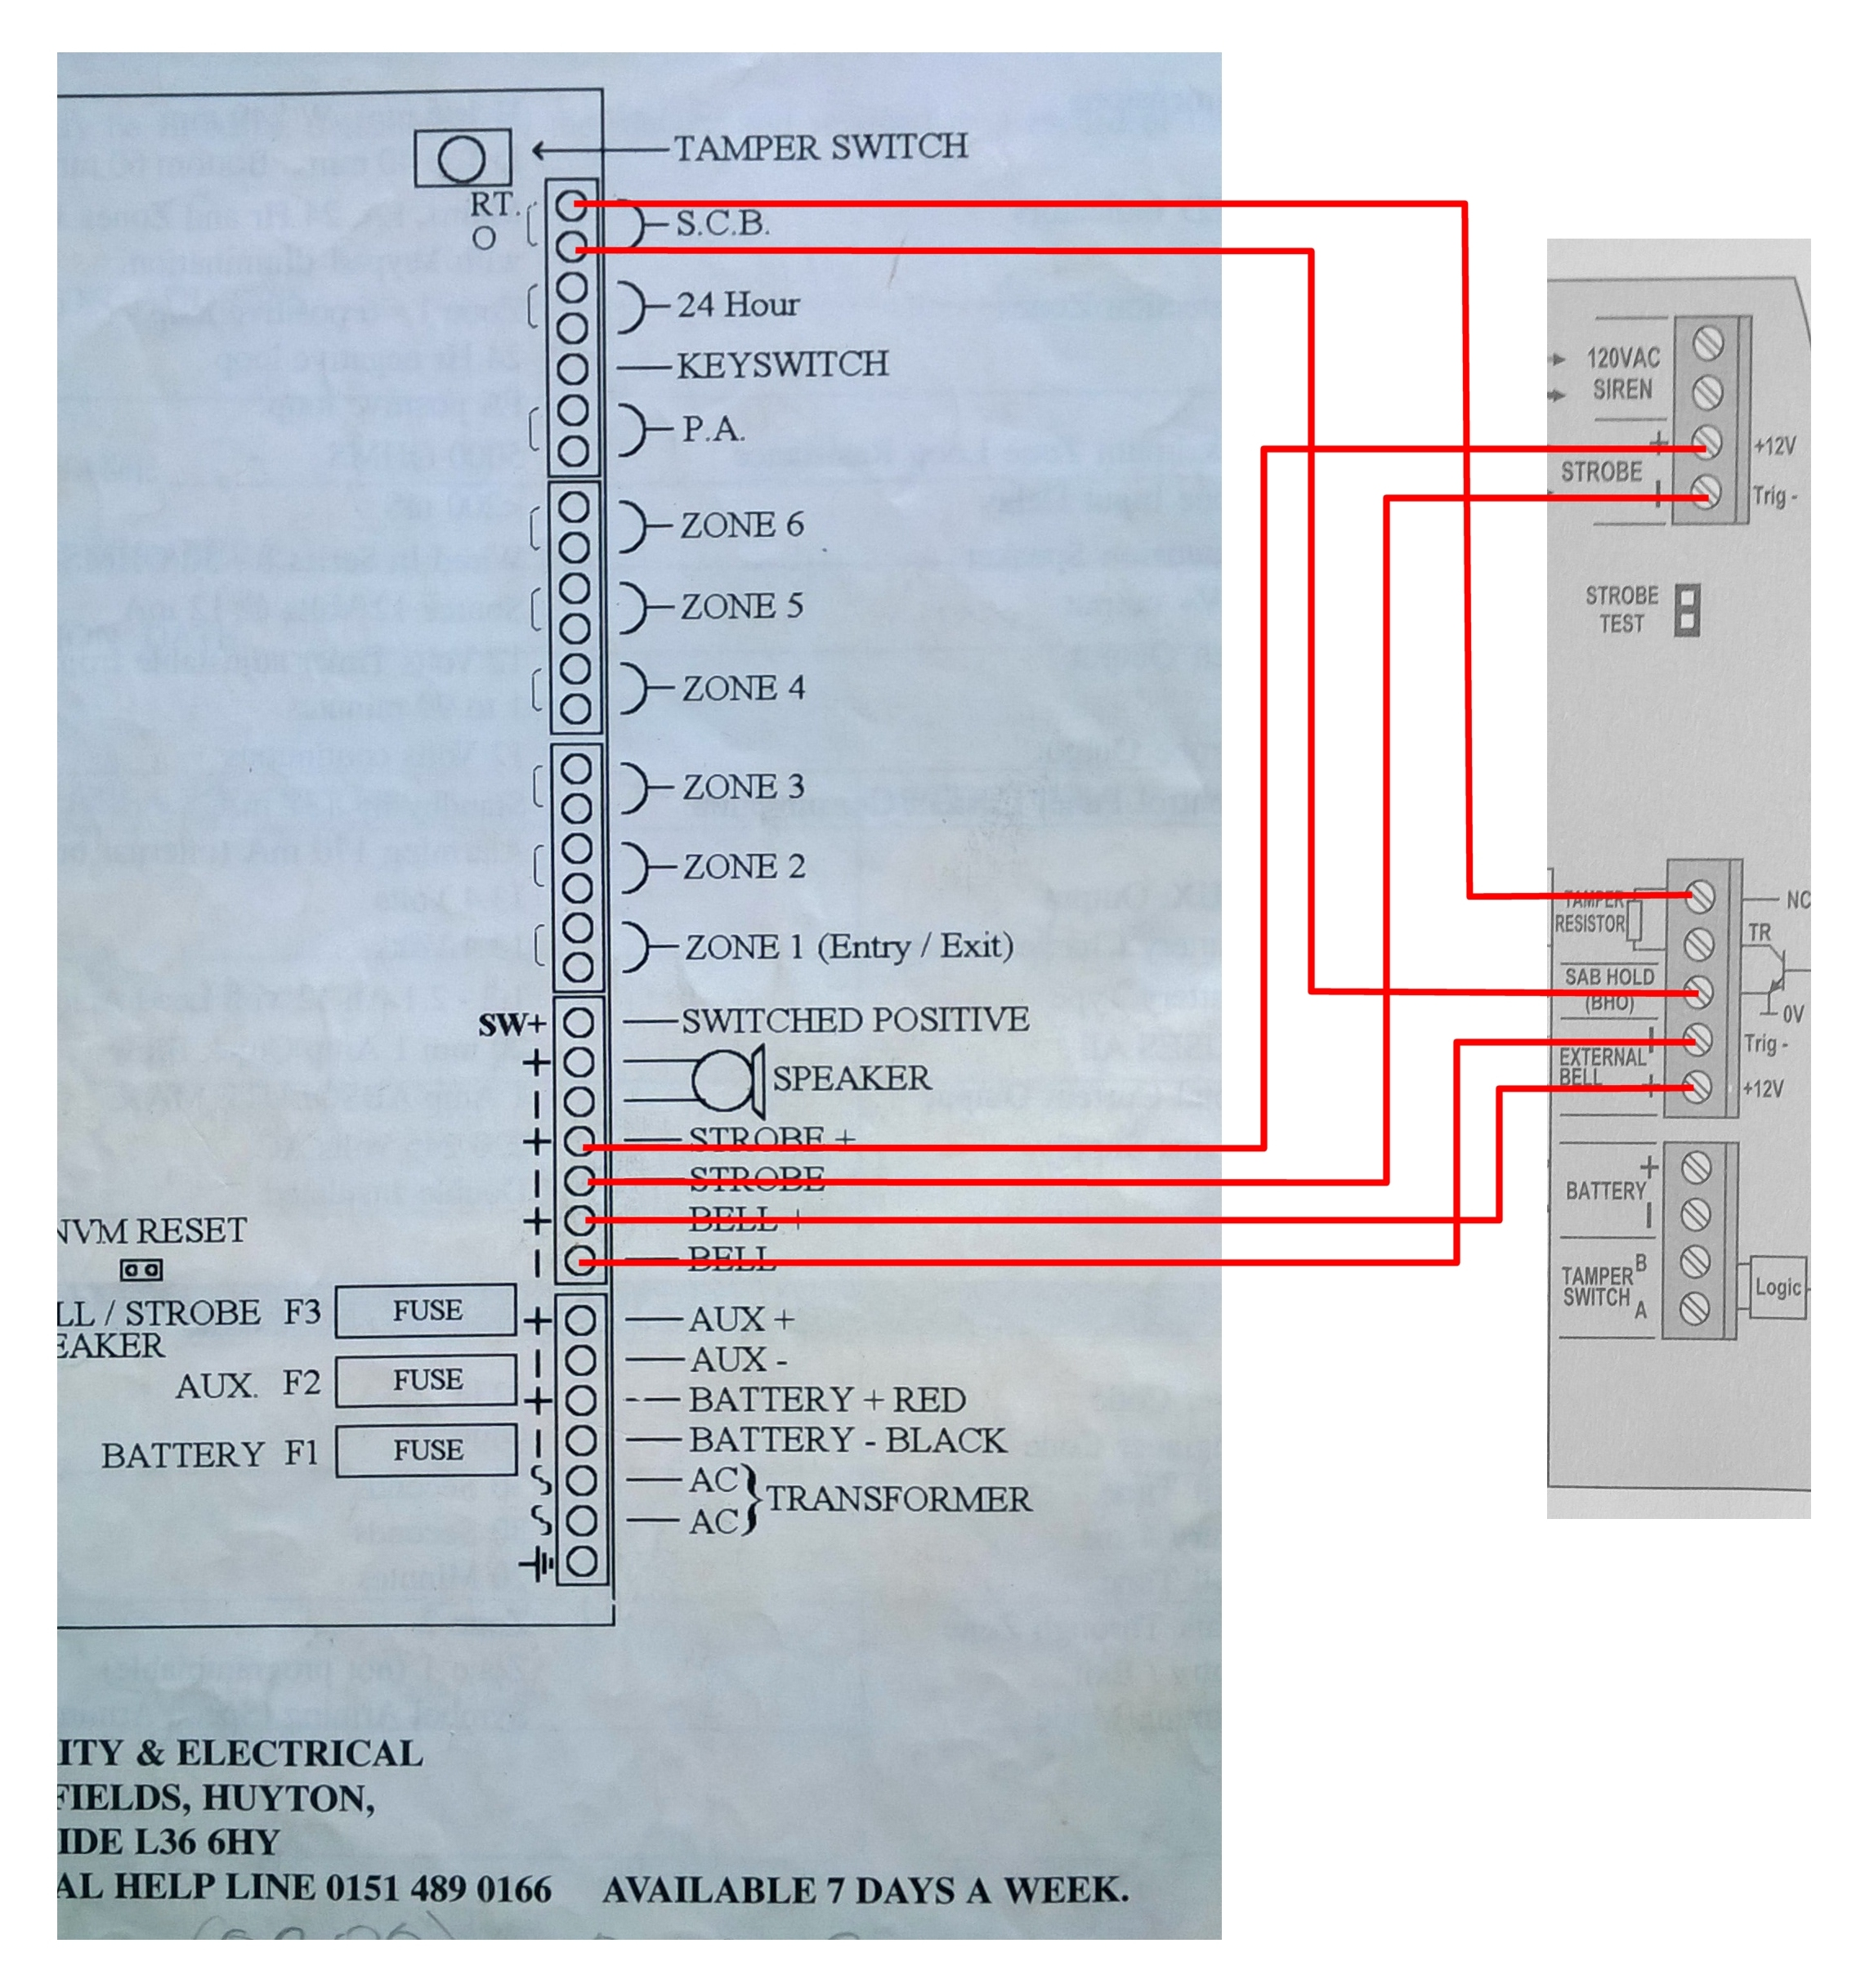 Intermatic Pool Control Panelshop Outlet Mechanical T104p3 Wiring Diagram For Hkc Alarm Gallery